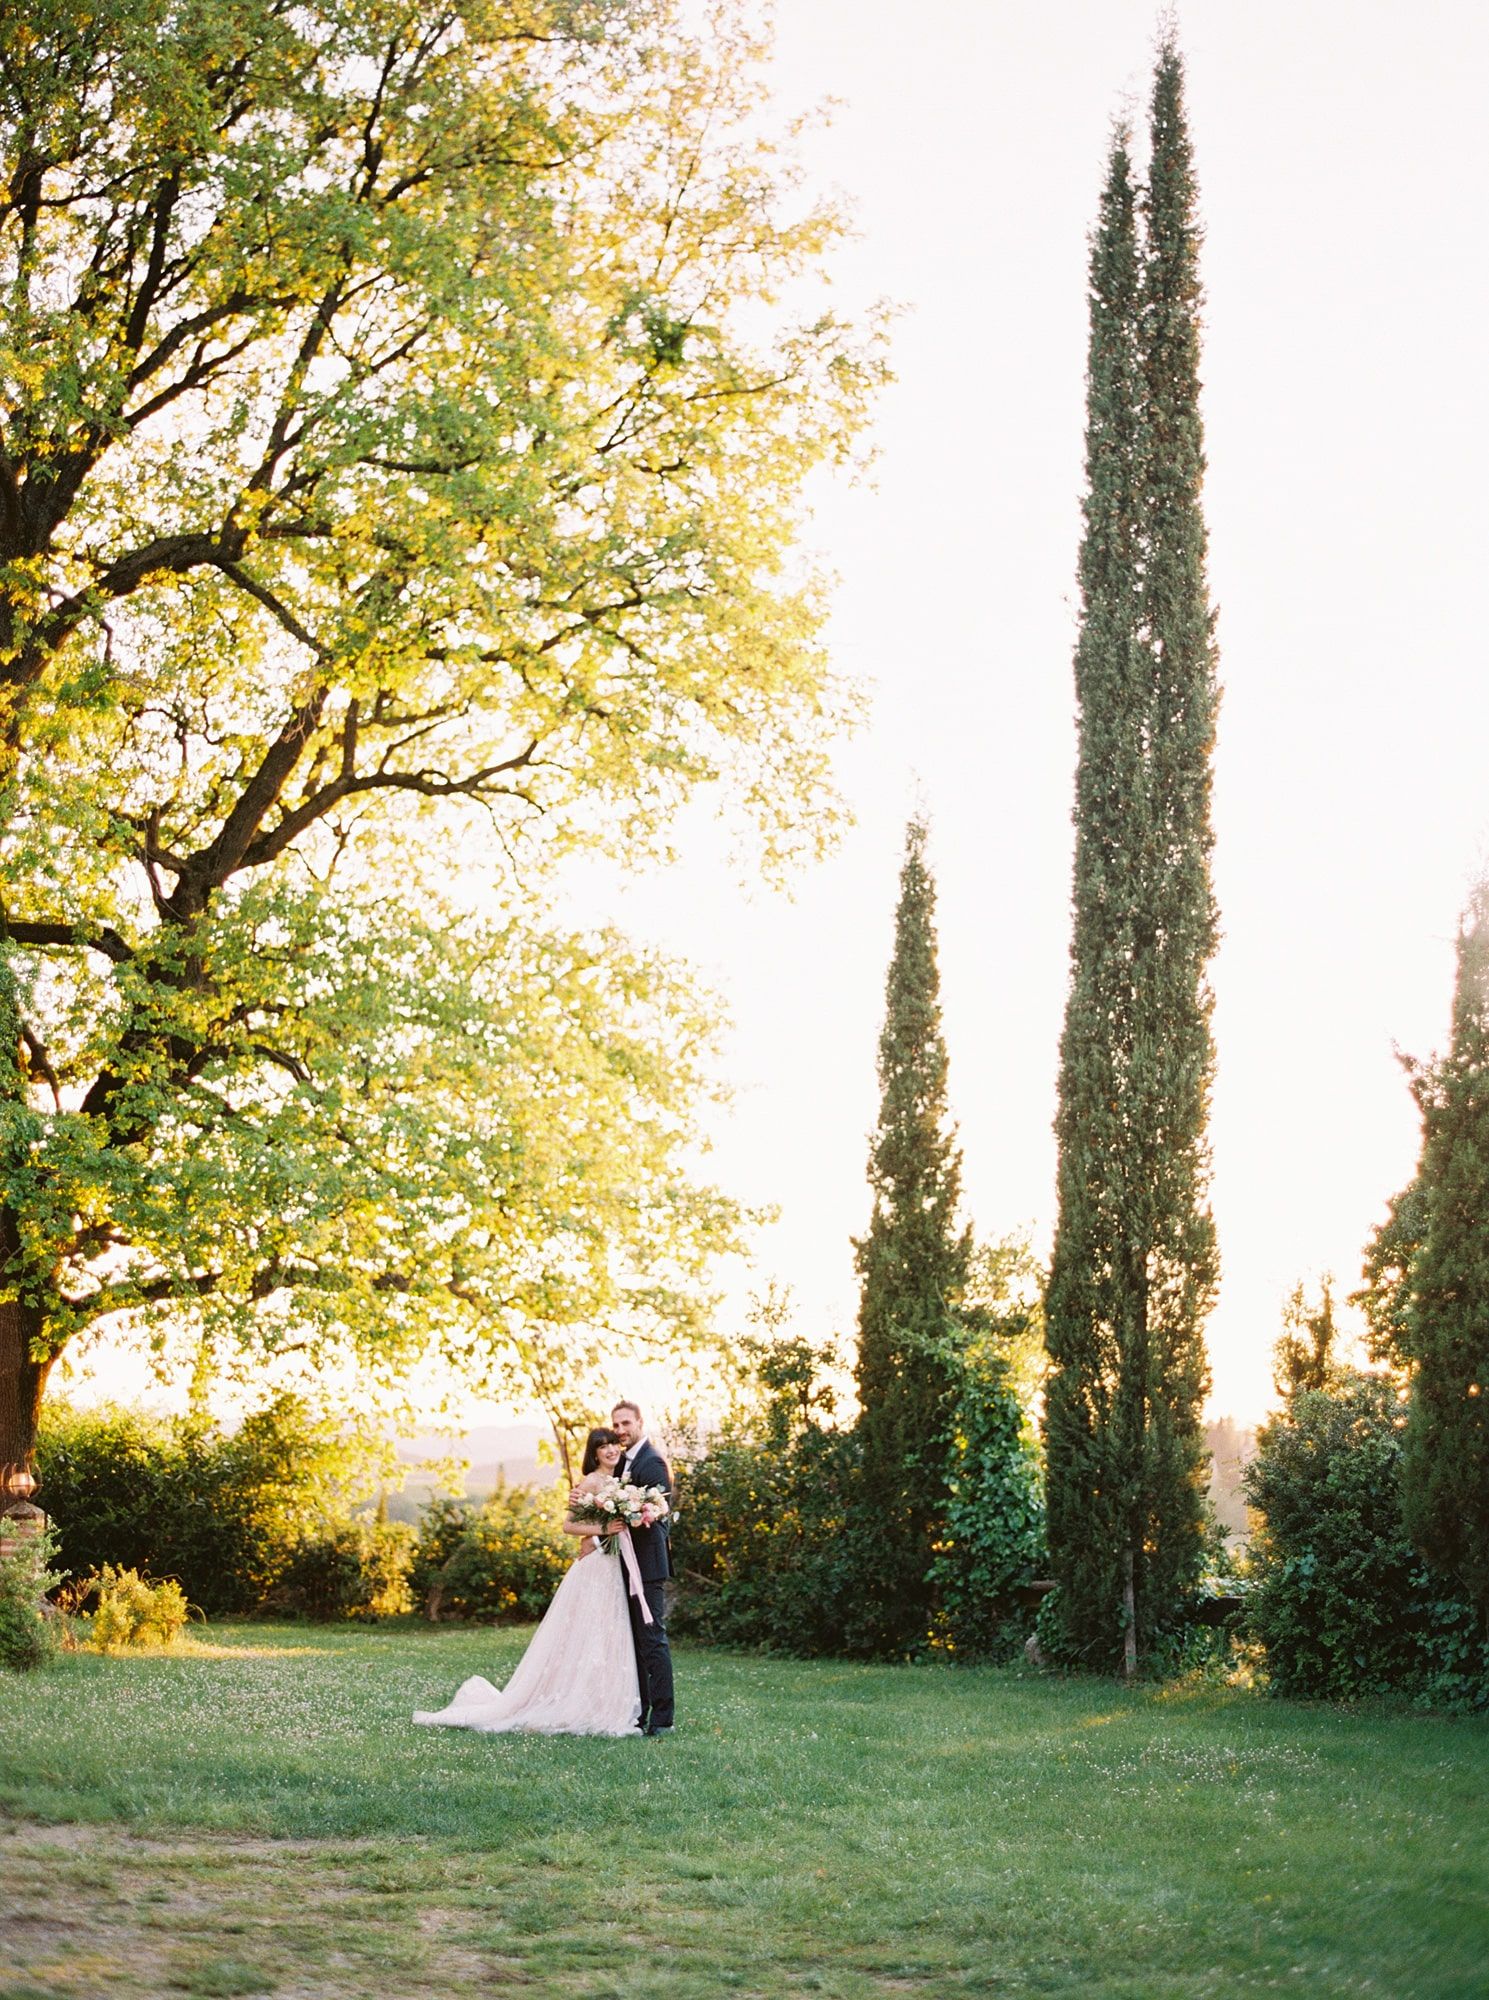 Elope To Ravenna, Italy With Fine Art Destination Wedding Photographer Stepan Vrzala, for Luxury Destination Wedding Blog Adriana Weddings